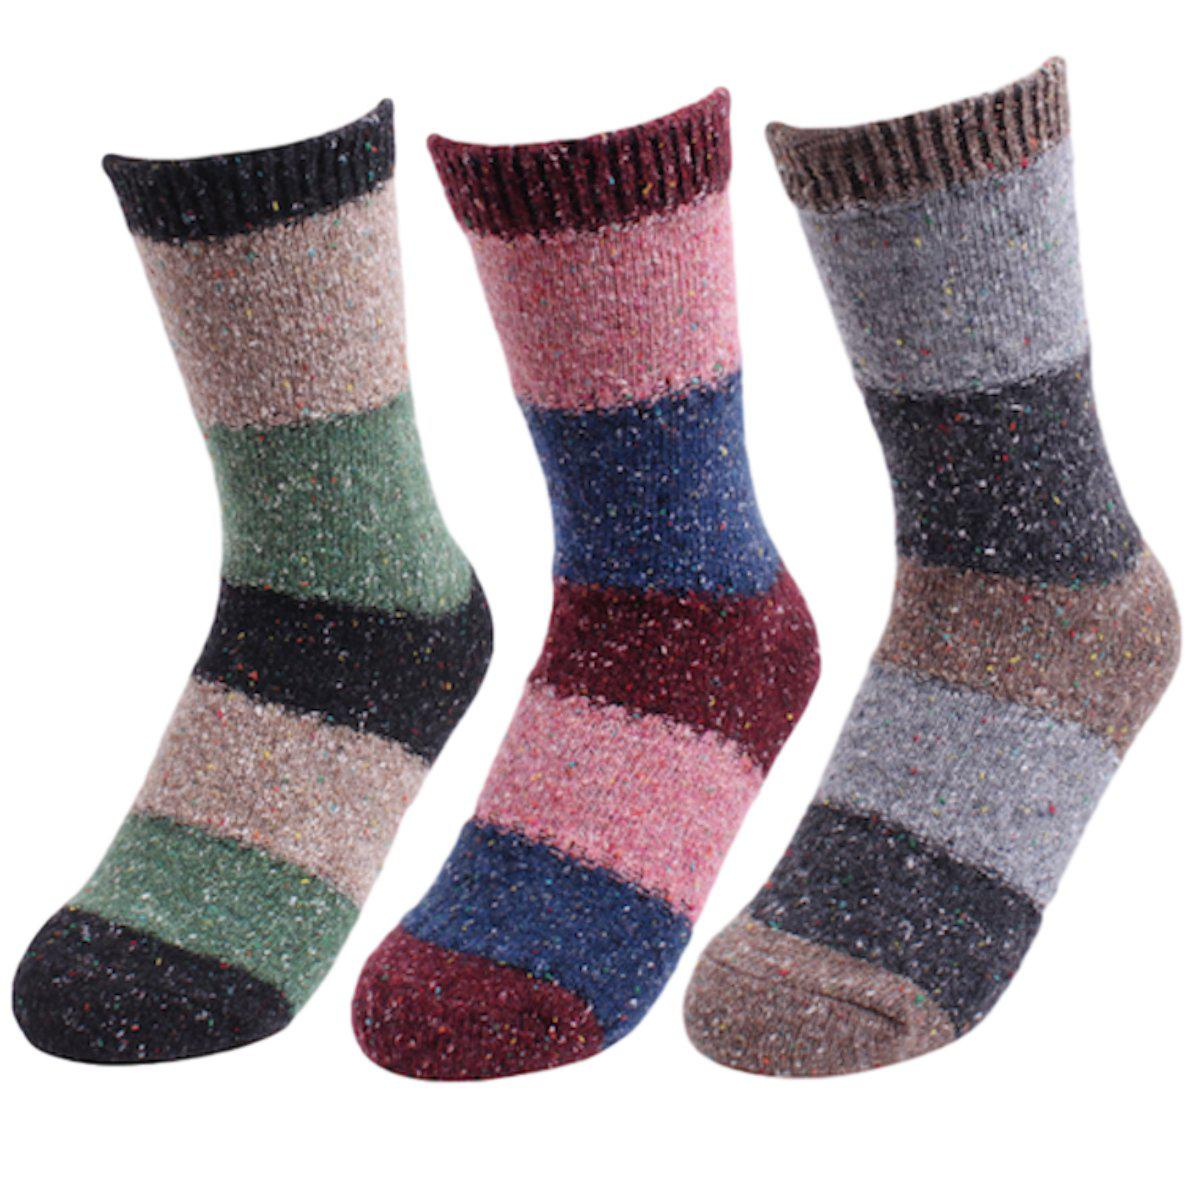 Colorful Striped Women's Nep Yarn Wool Blend Socks